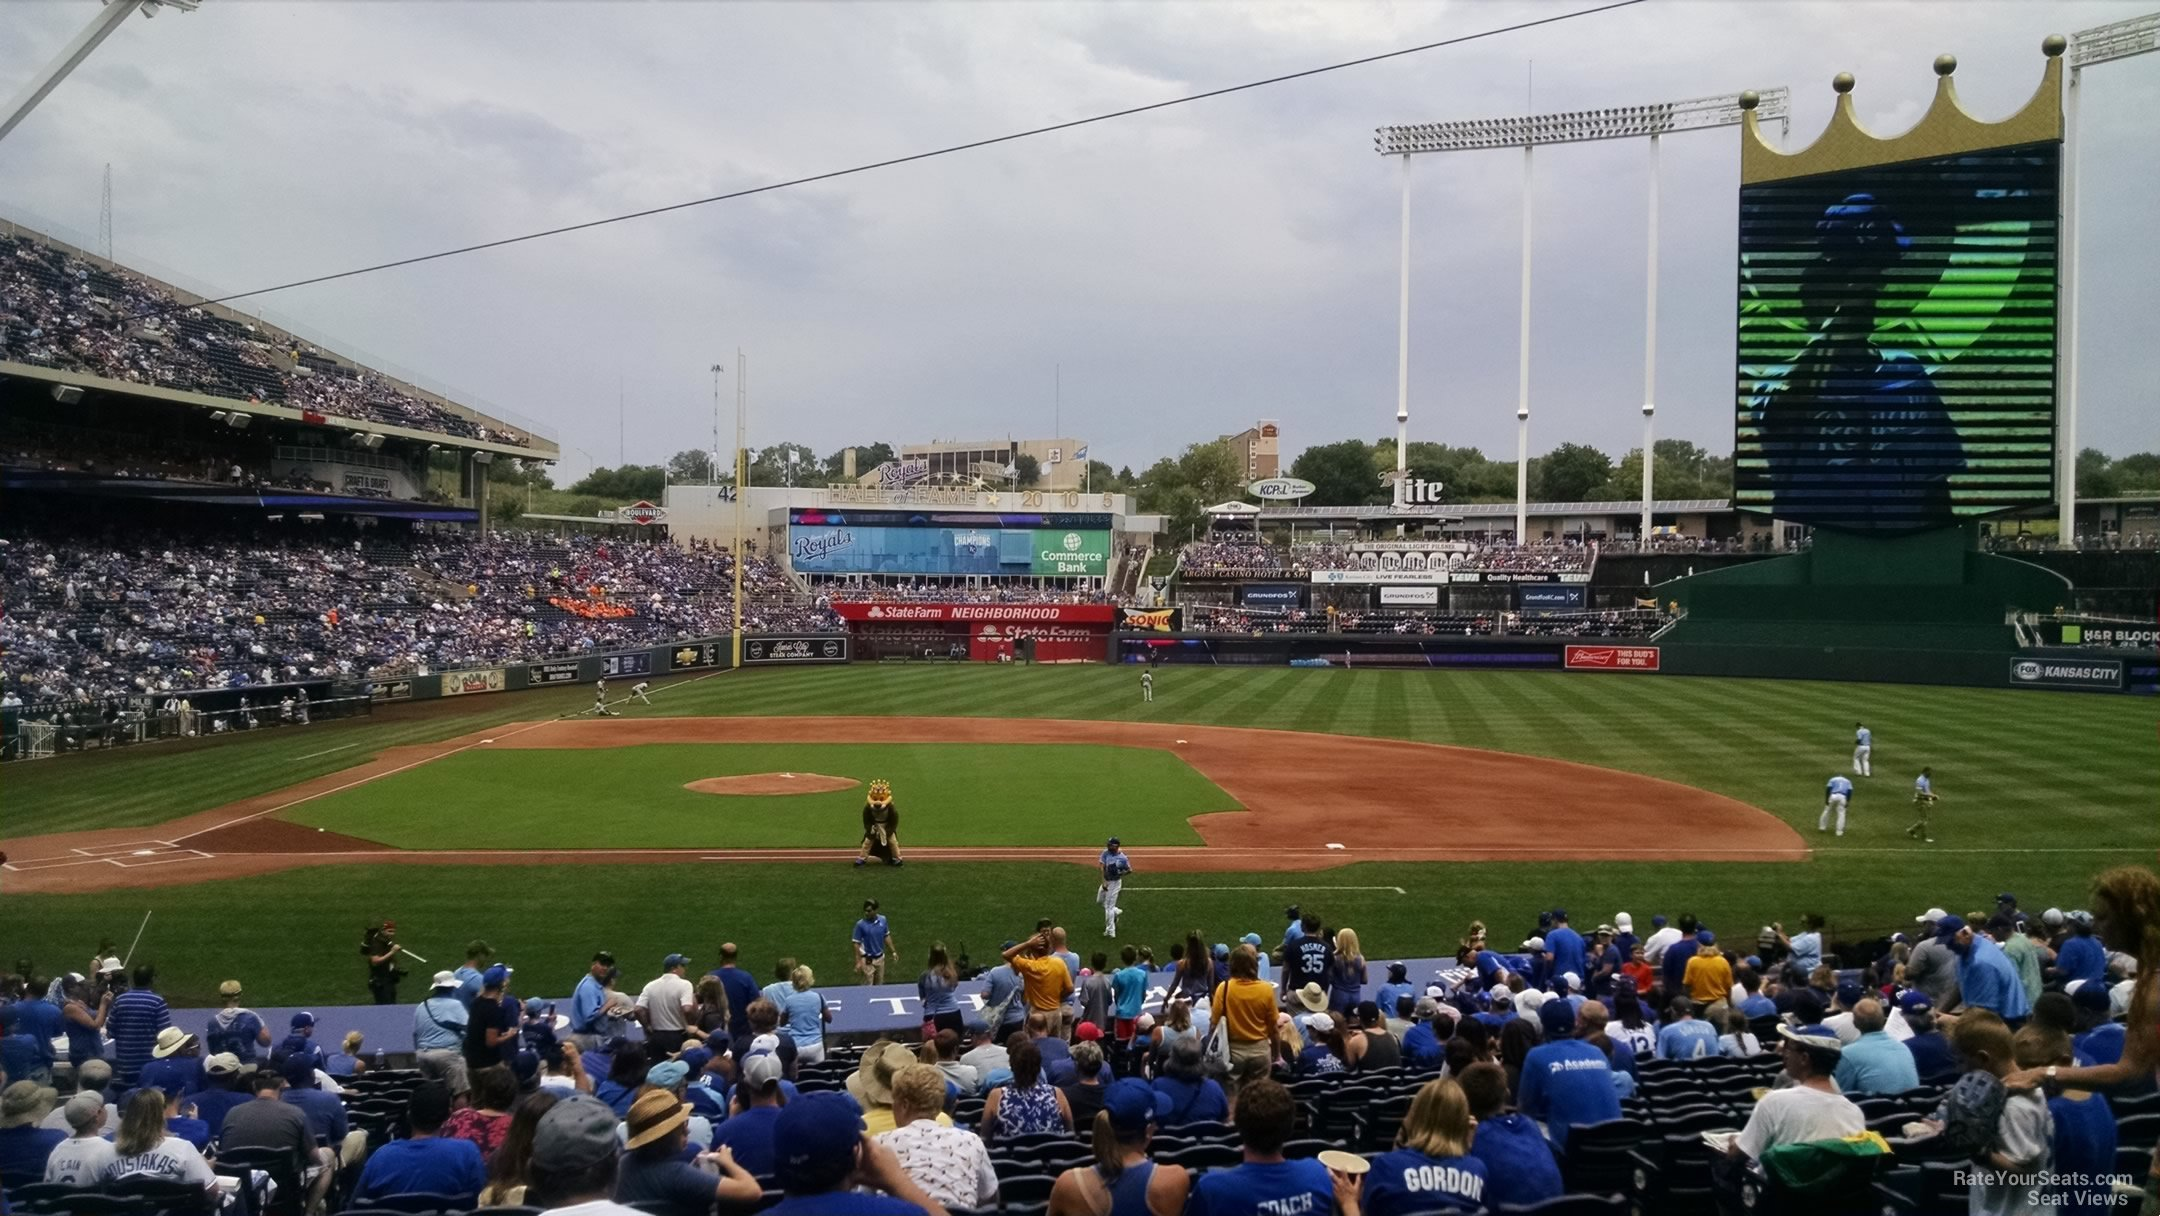 Kauffman Stadium Seating Chart With Rows - Best Car Update ...